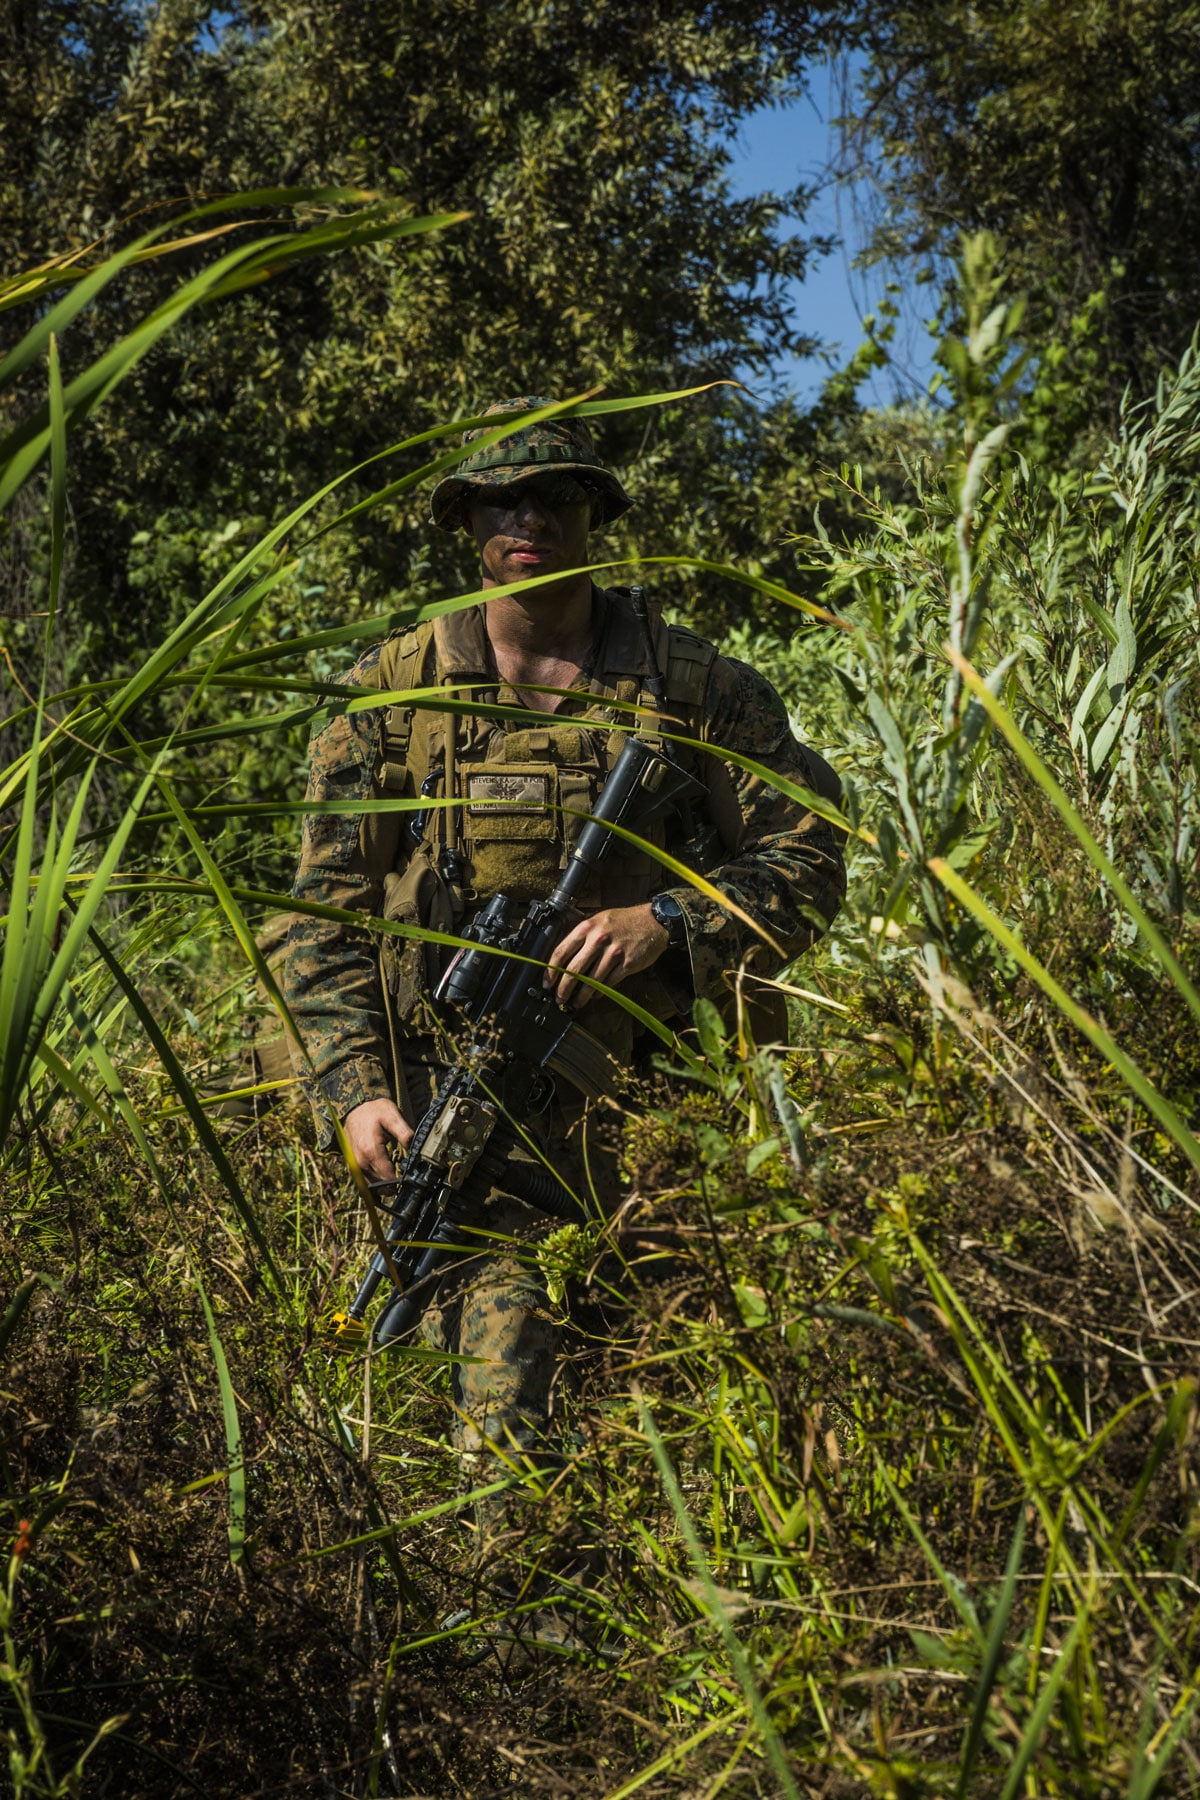 U.S. Marine Corps Cpl. Kyle Stevens, a Joint Fire Observer, leads his Marine Corps fire team during a simulated reconnaissance mission on Camp Pendleton, California.